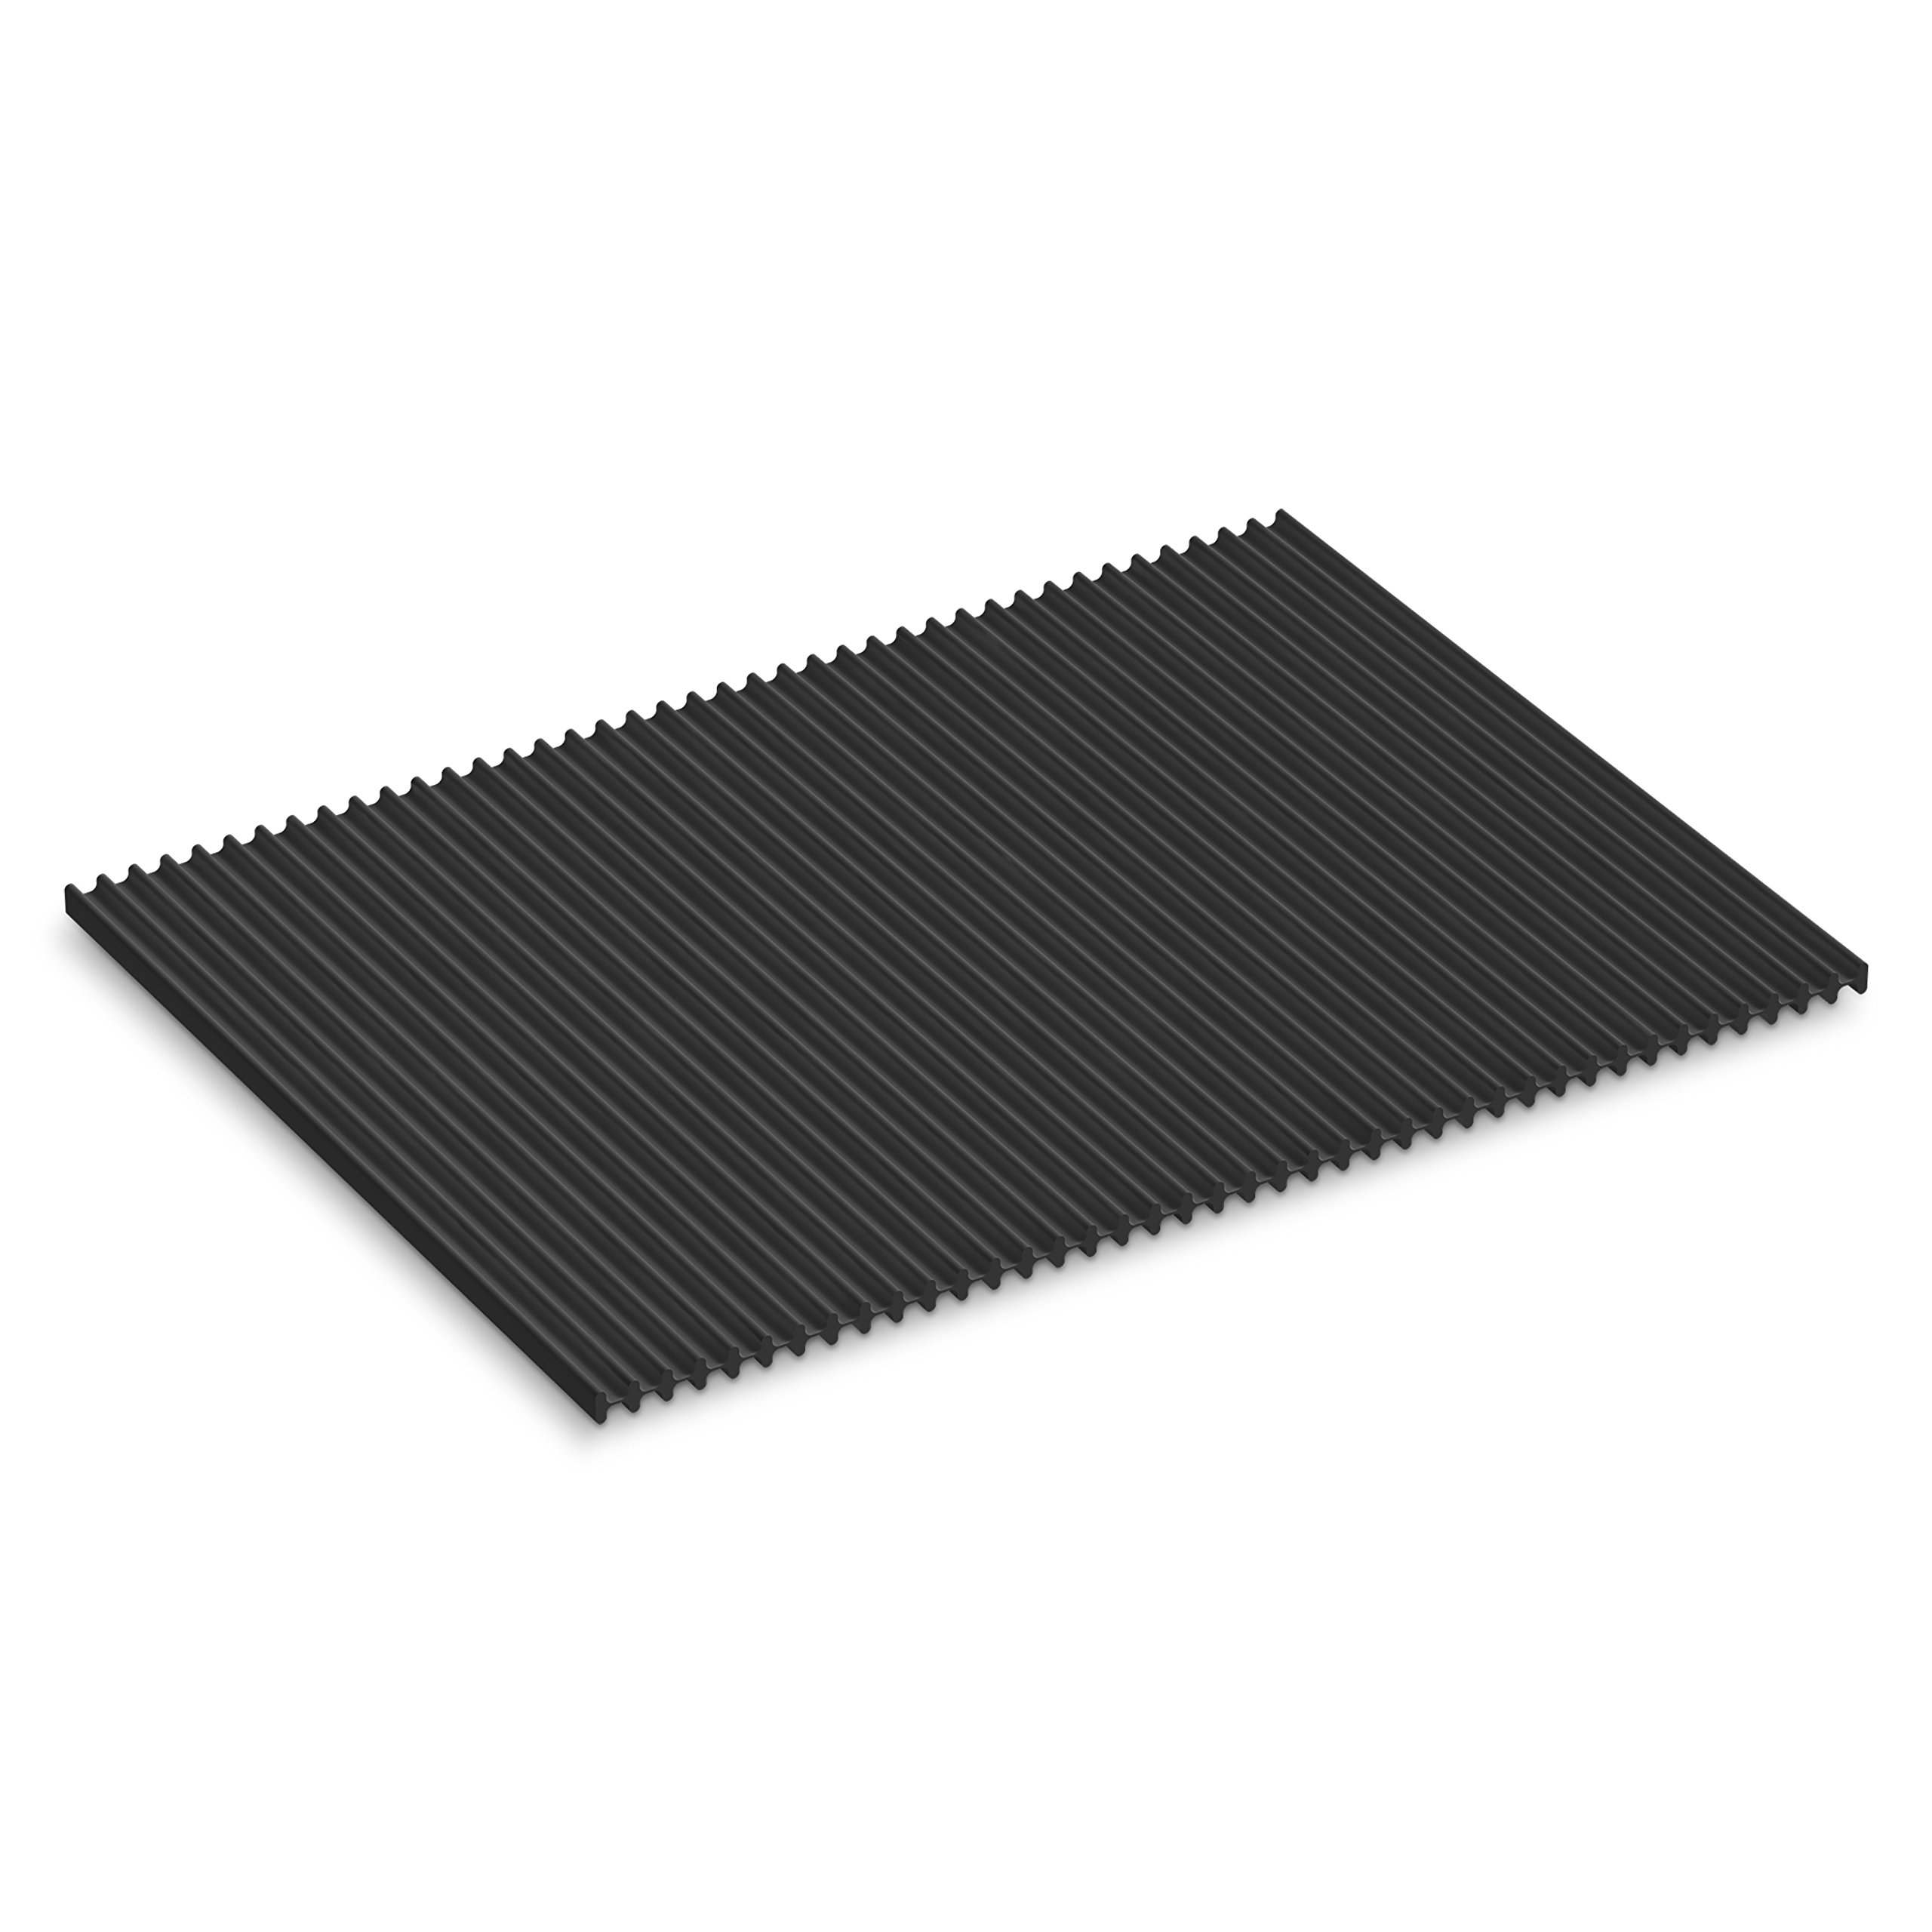 KOHLER Storable Large Silicone Dish Drying Mat 11'' x 15'', Heat Resistant up to 500 Degrees F, Charcoal